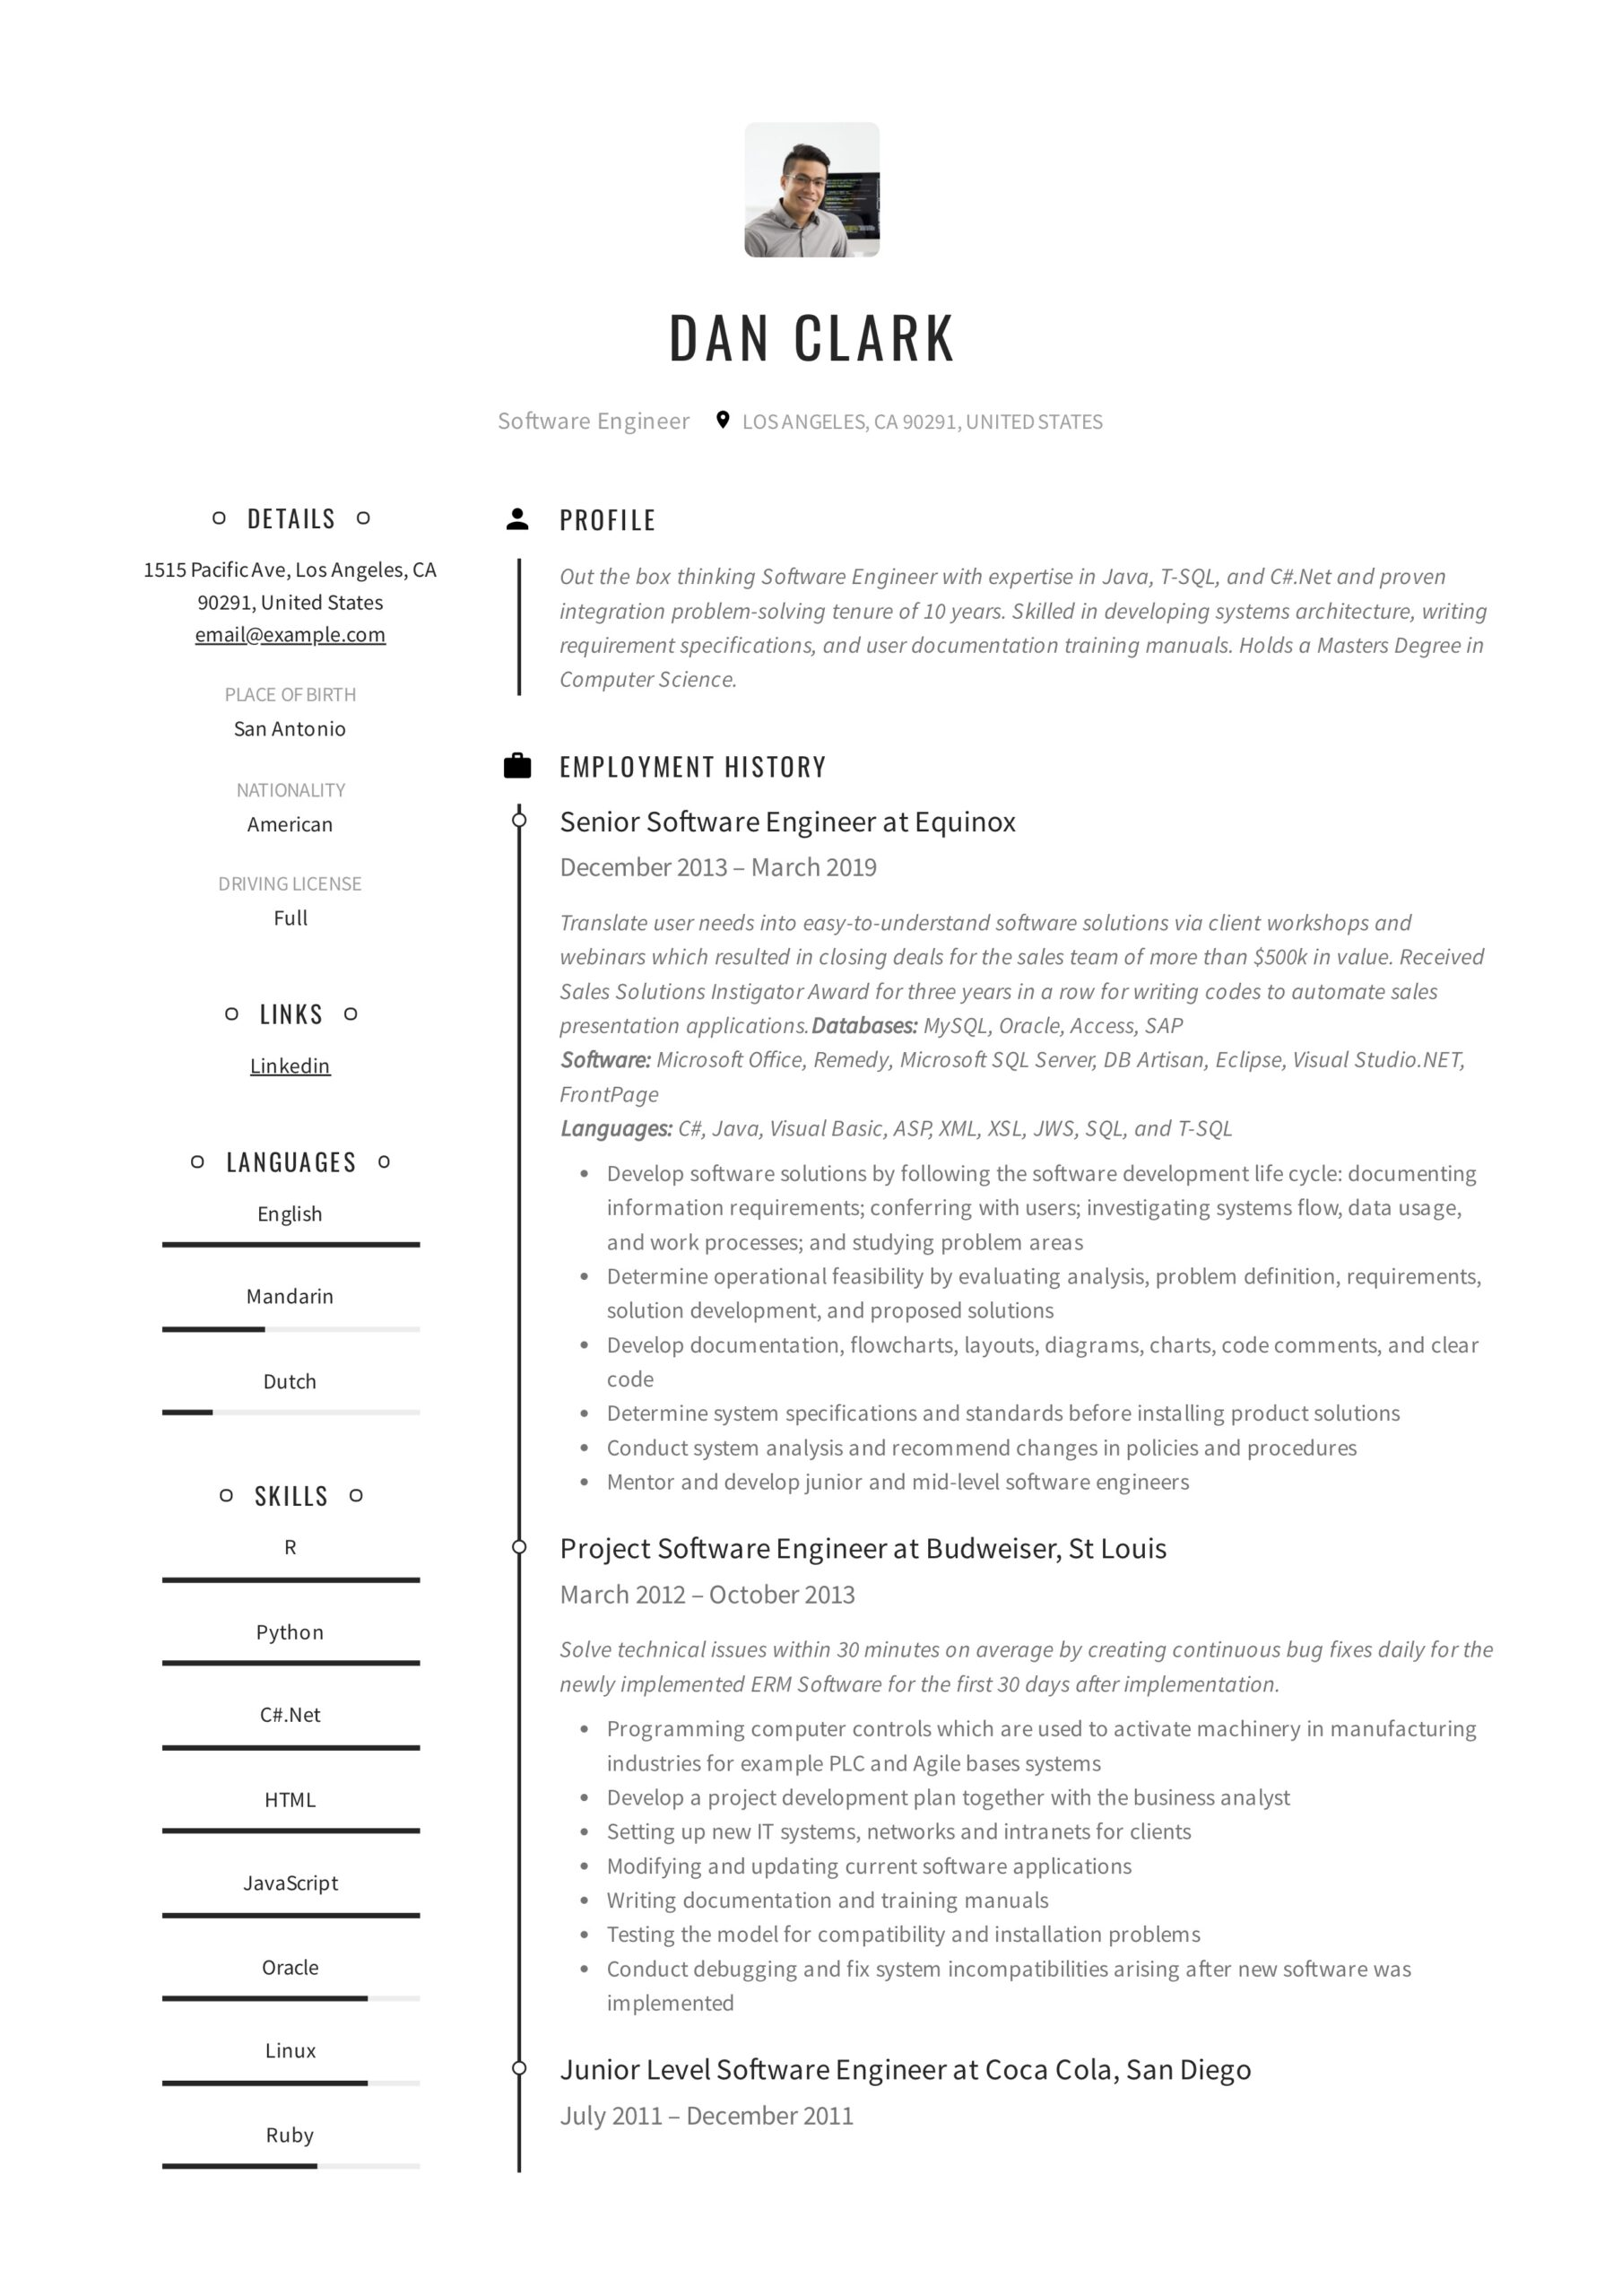 resume templates pdf word free downloads and guides best format dan software engineer Resume 2020 Best Resume Format